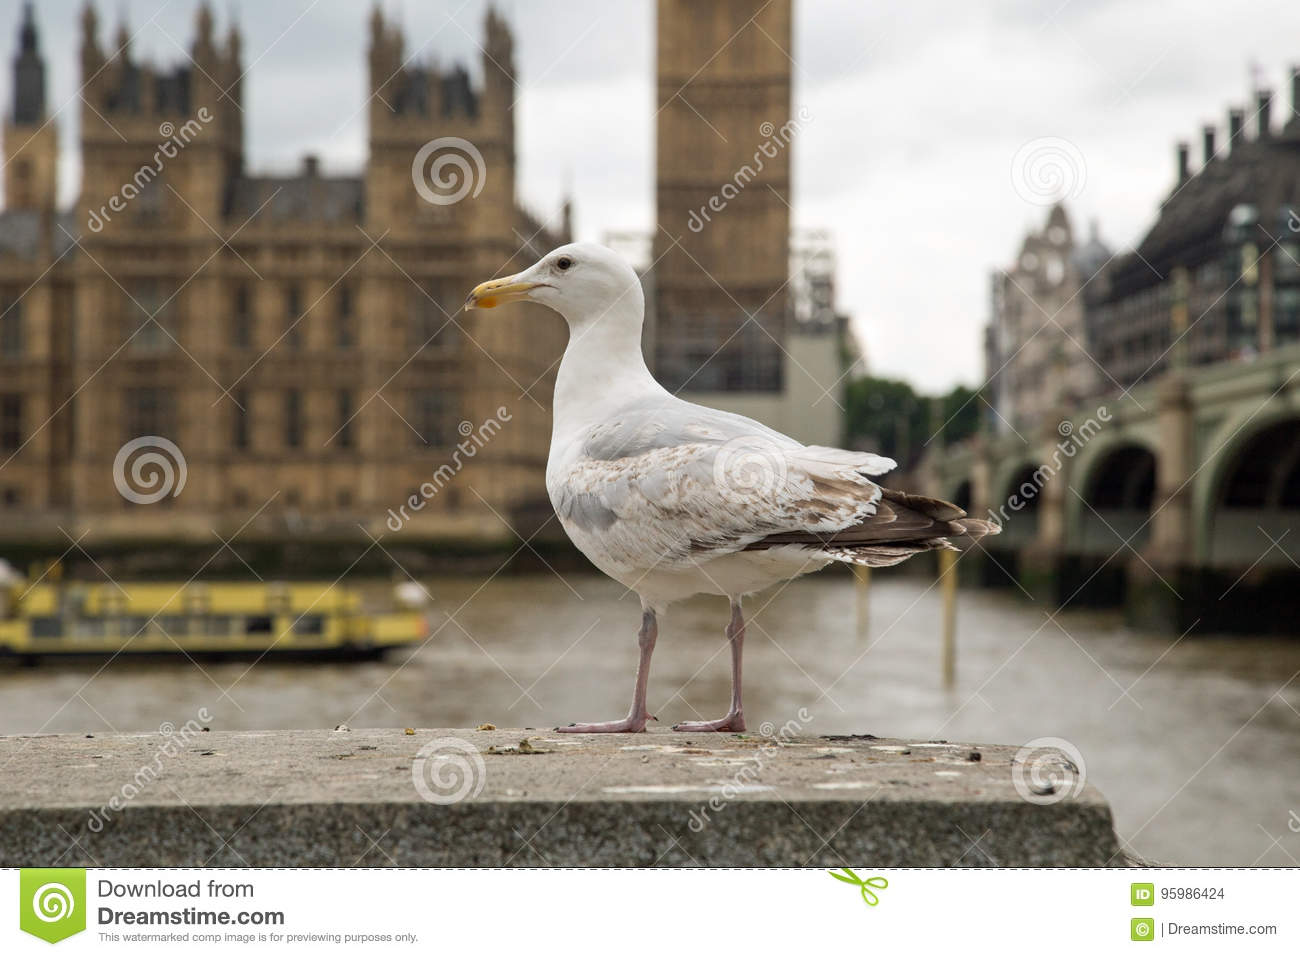 Seagull against a background of the UK houses of parliament